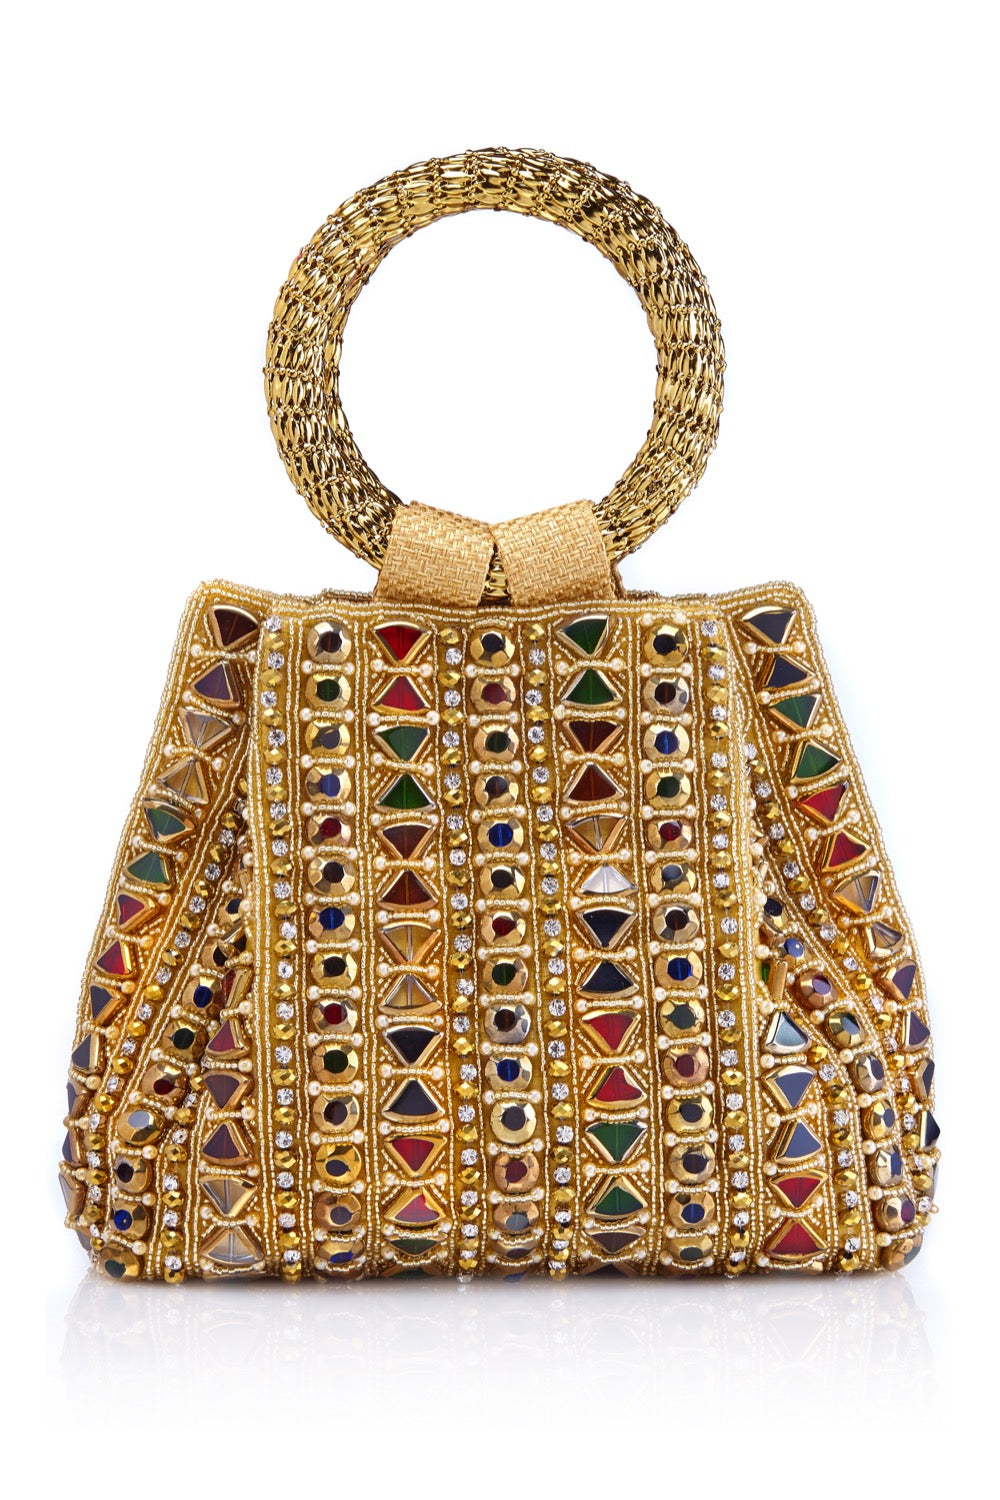 Frances Bean Cobain Mae Cassidy Rekha Reflect Renaissance pleasure Faire Los Angeles Nivarna Courtney Love Kurt Cobain Luxury Accessories Festival Fashion handbag embellished